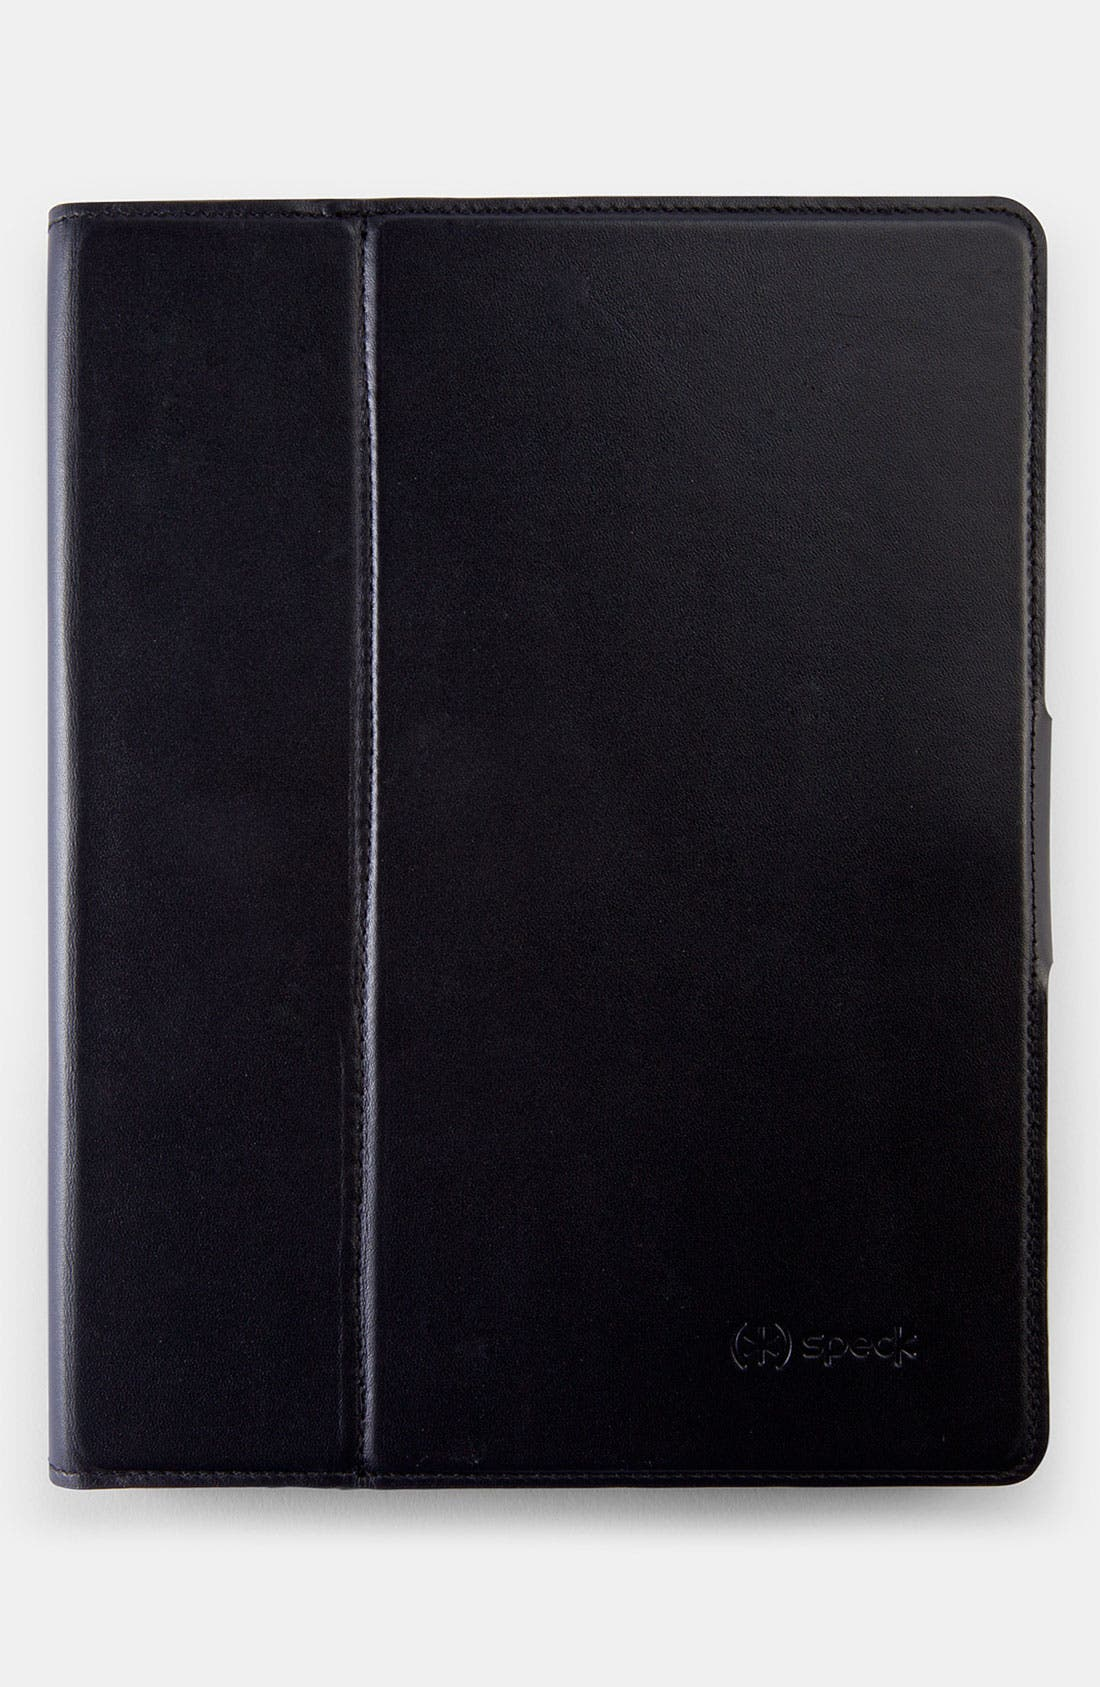 Main Image - Speck 'Wanderfolio - Luxe' Leather iPad 3 Case